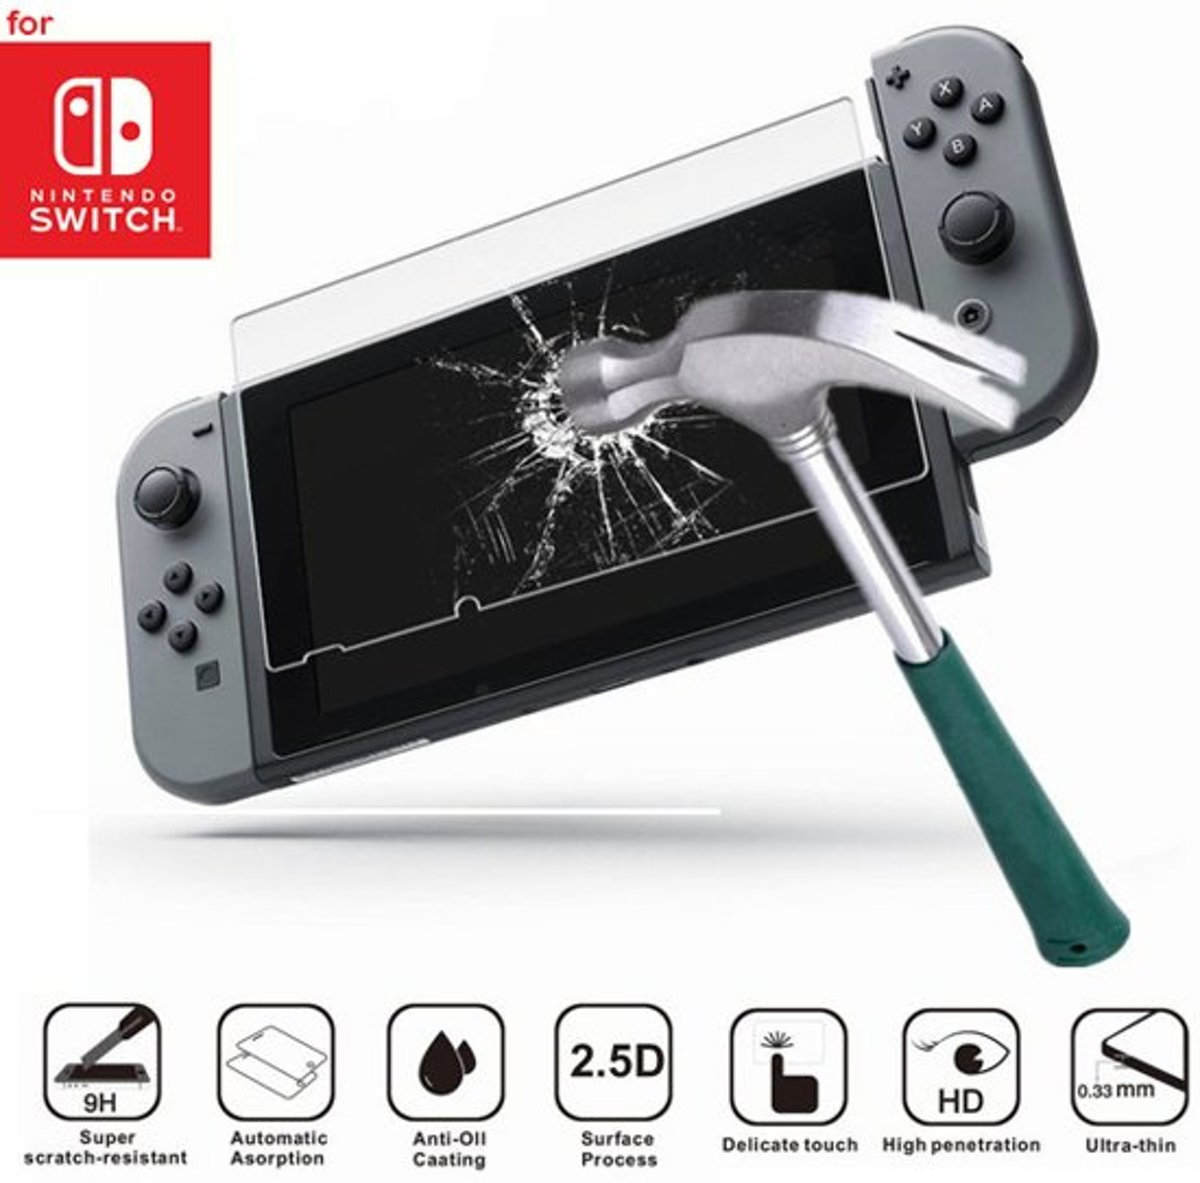 Nintendo Switch Tempered Glass Protector (Gehard glas)